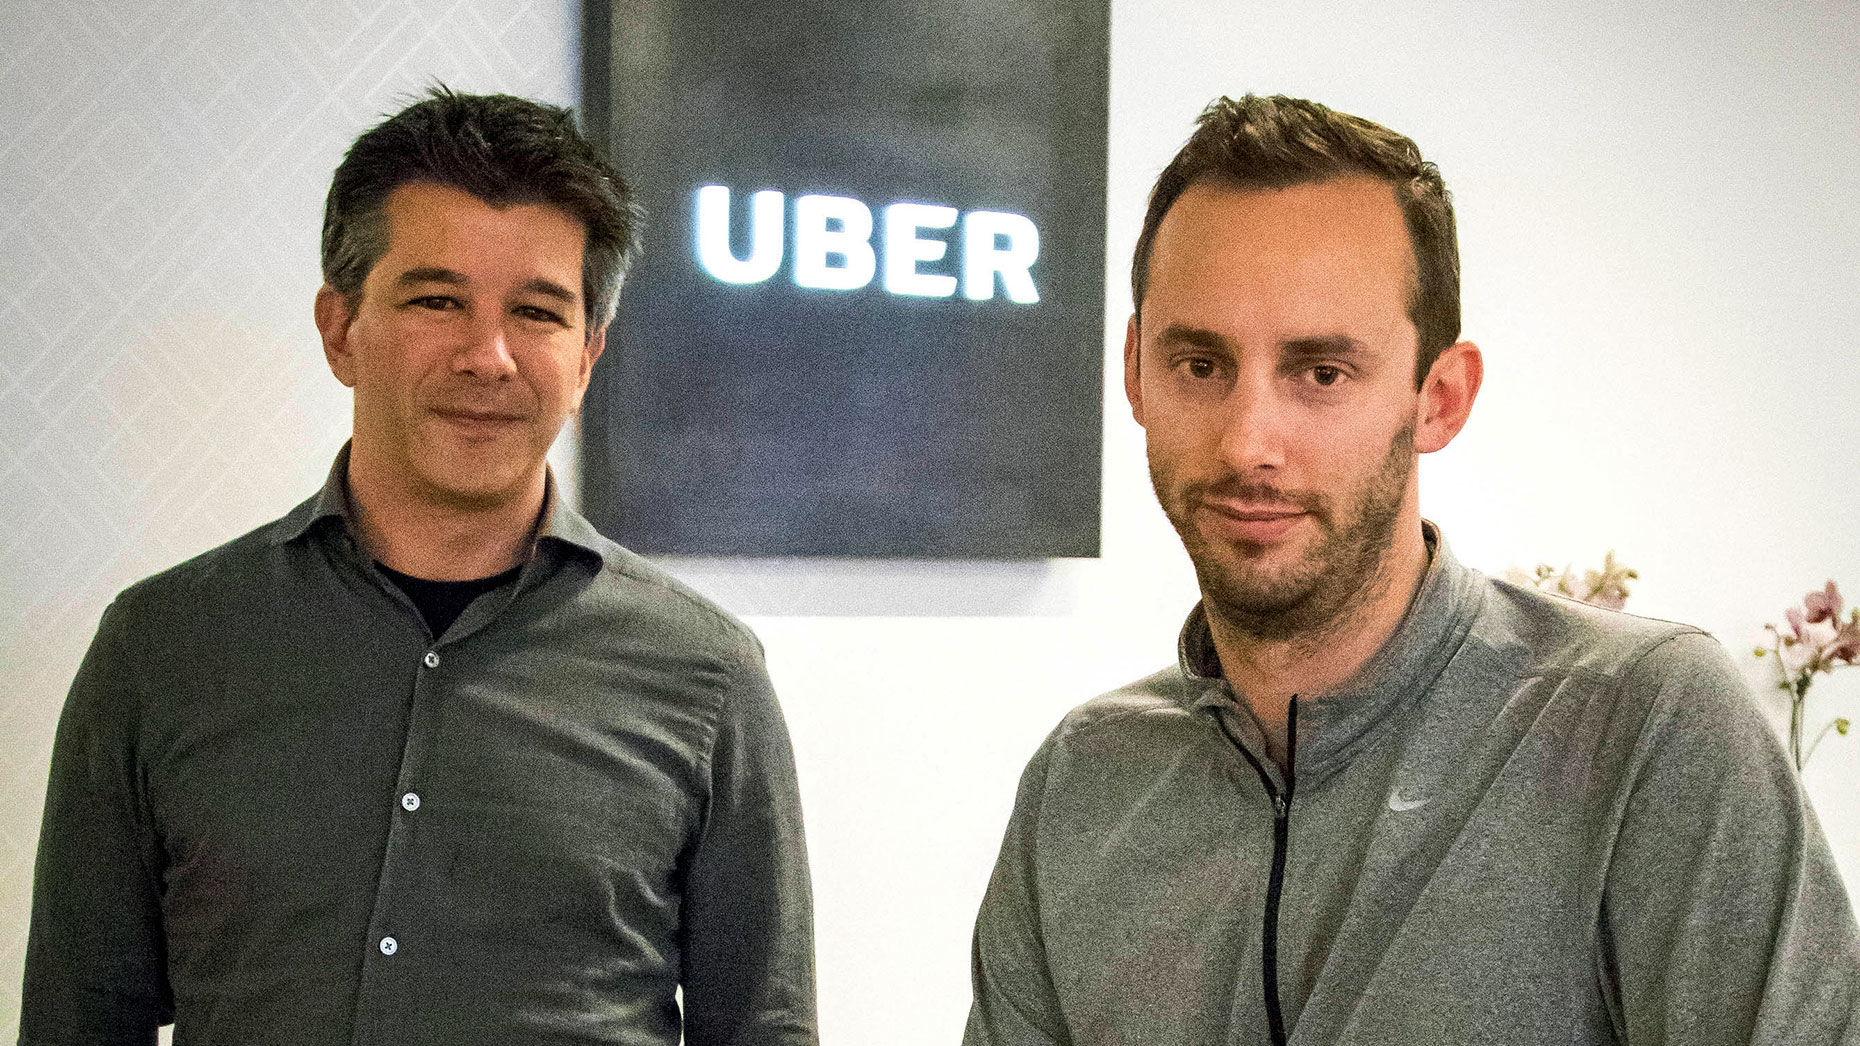 Former Uber CEO Travis Kalanick, left, with Anthony Levandowski, in 2016. Photo: AP